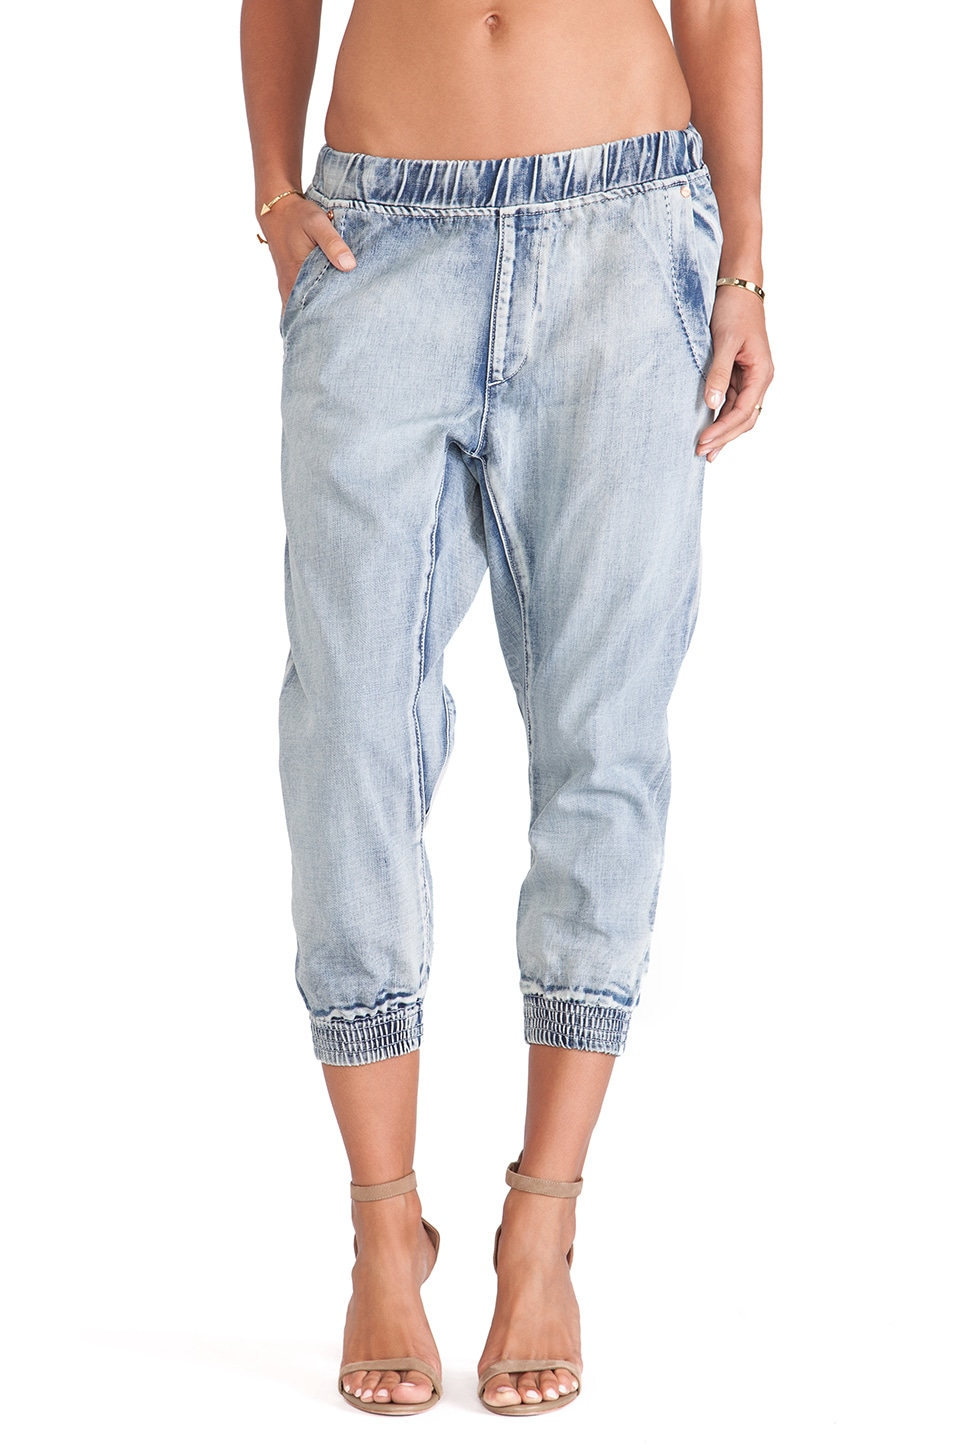 One Teaspoon Dundees Trousers in Fiasco